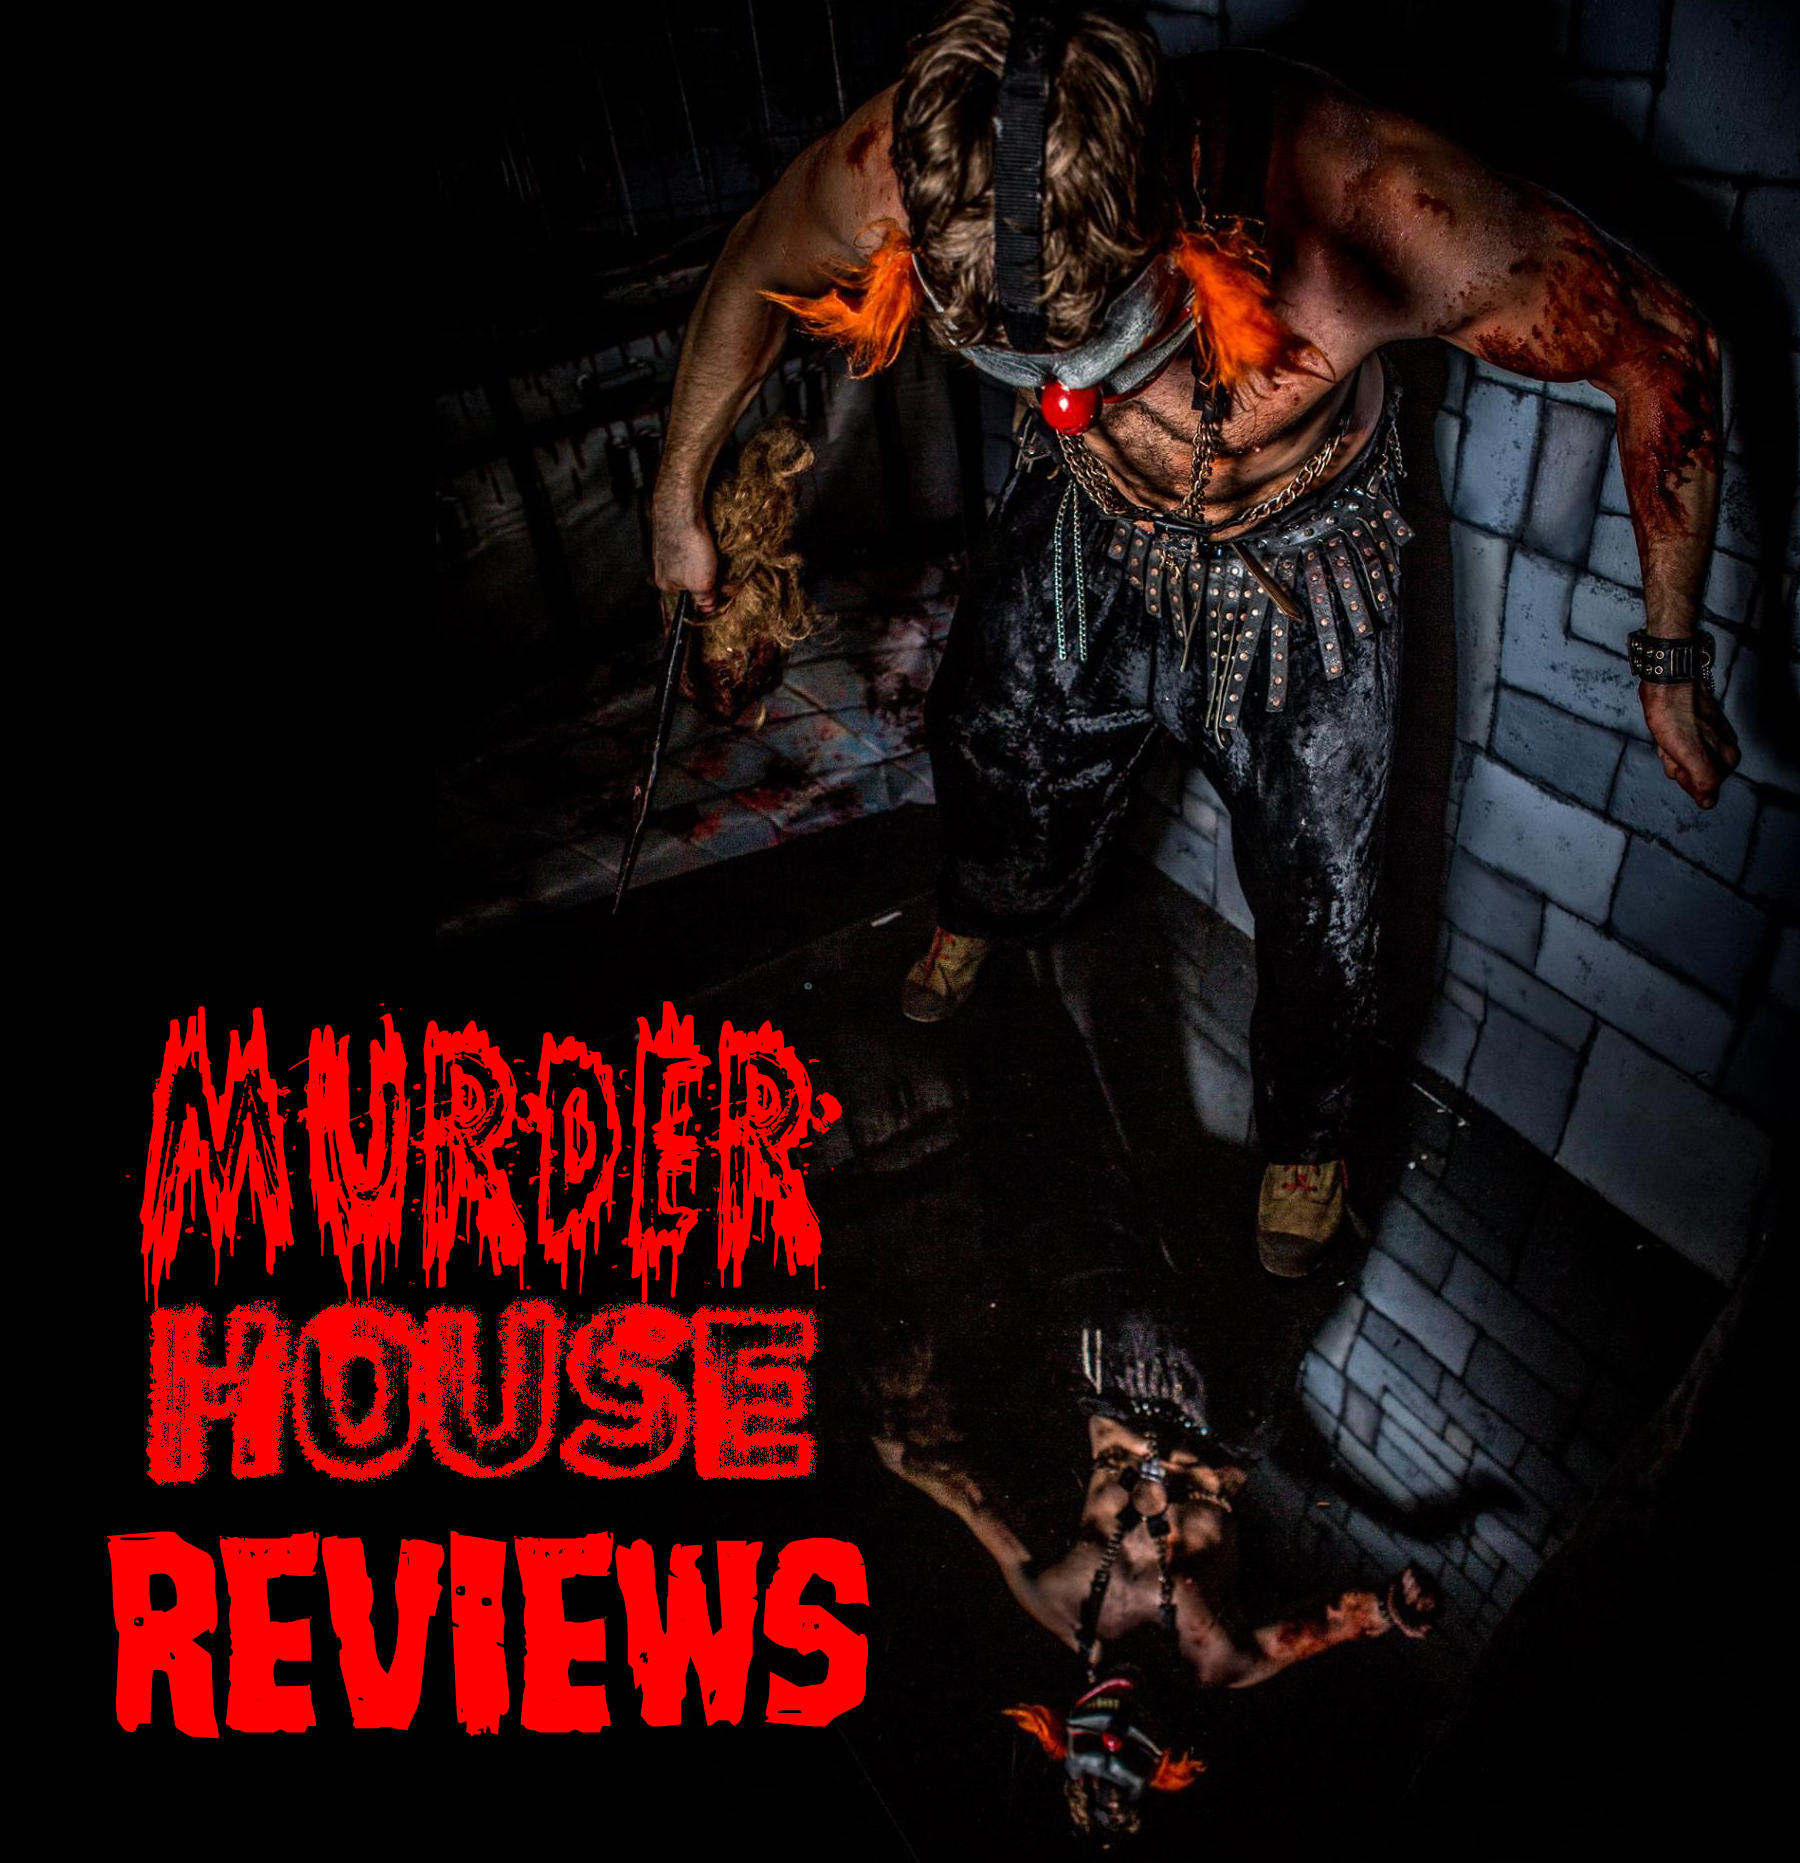 WWW.MURDERHOUSEREVIEWS.COM